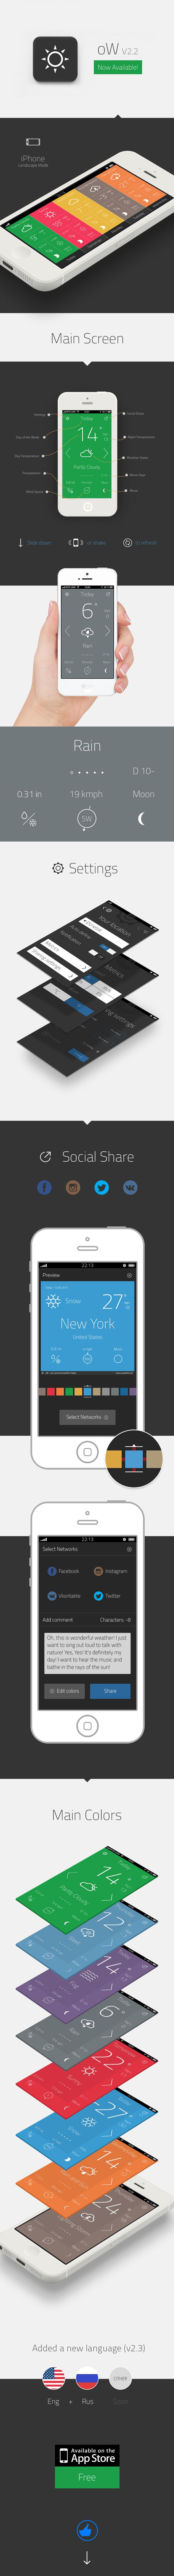 """Weather App """"Outside the window"""" v 2.2 by Artem Svitelskyi, via Behance  Available on AppStore! https://itunes.apple.com/us/app/ow/id596100553?ls=1=8"""